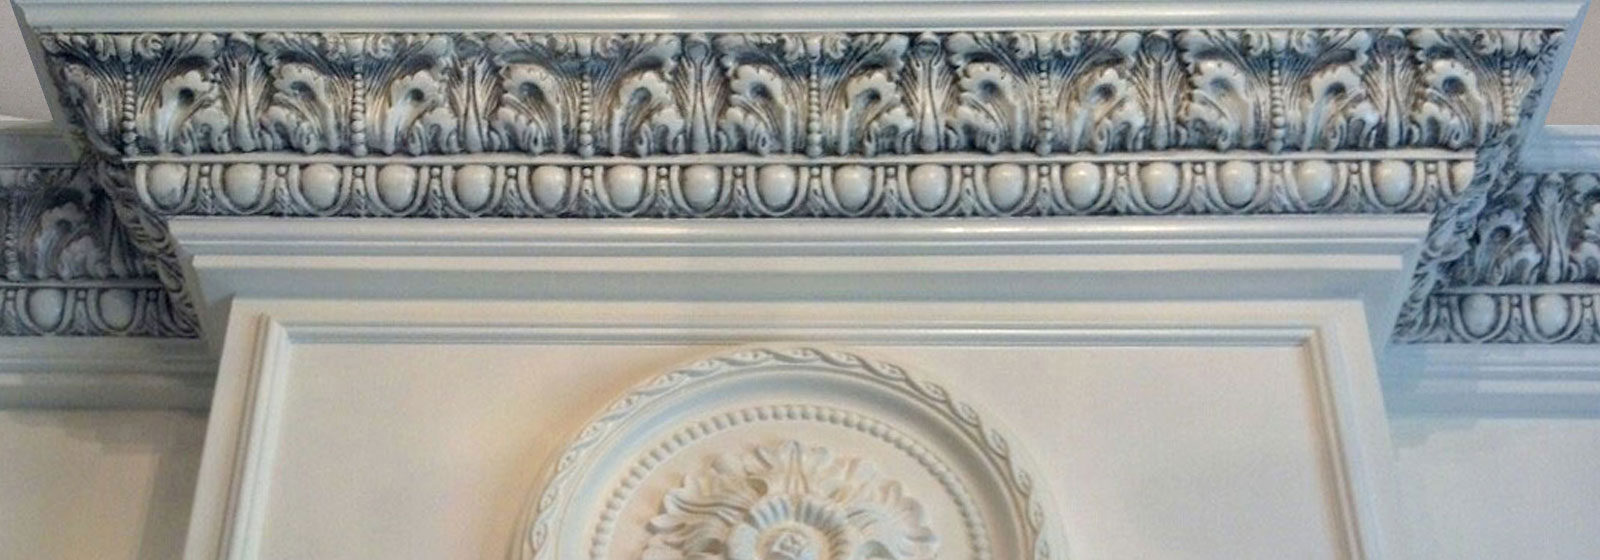 Crown Moulding, Cove Moulding